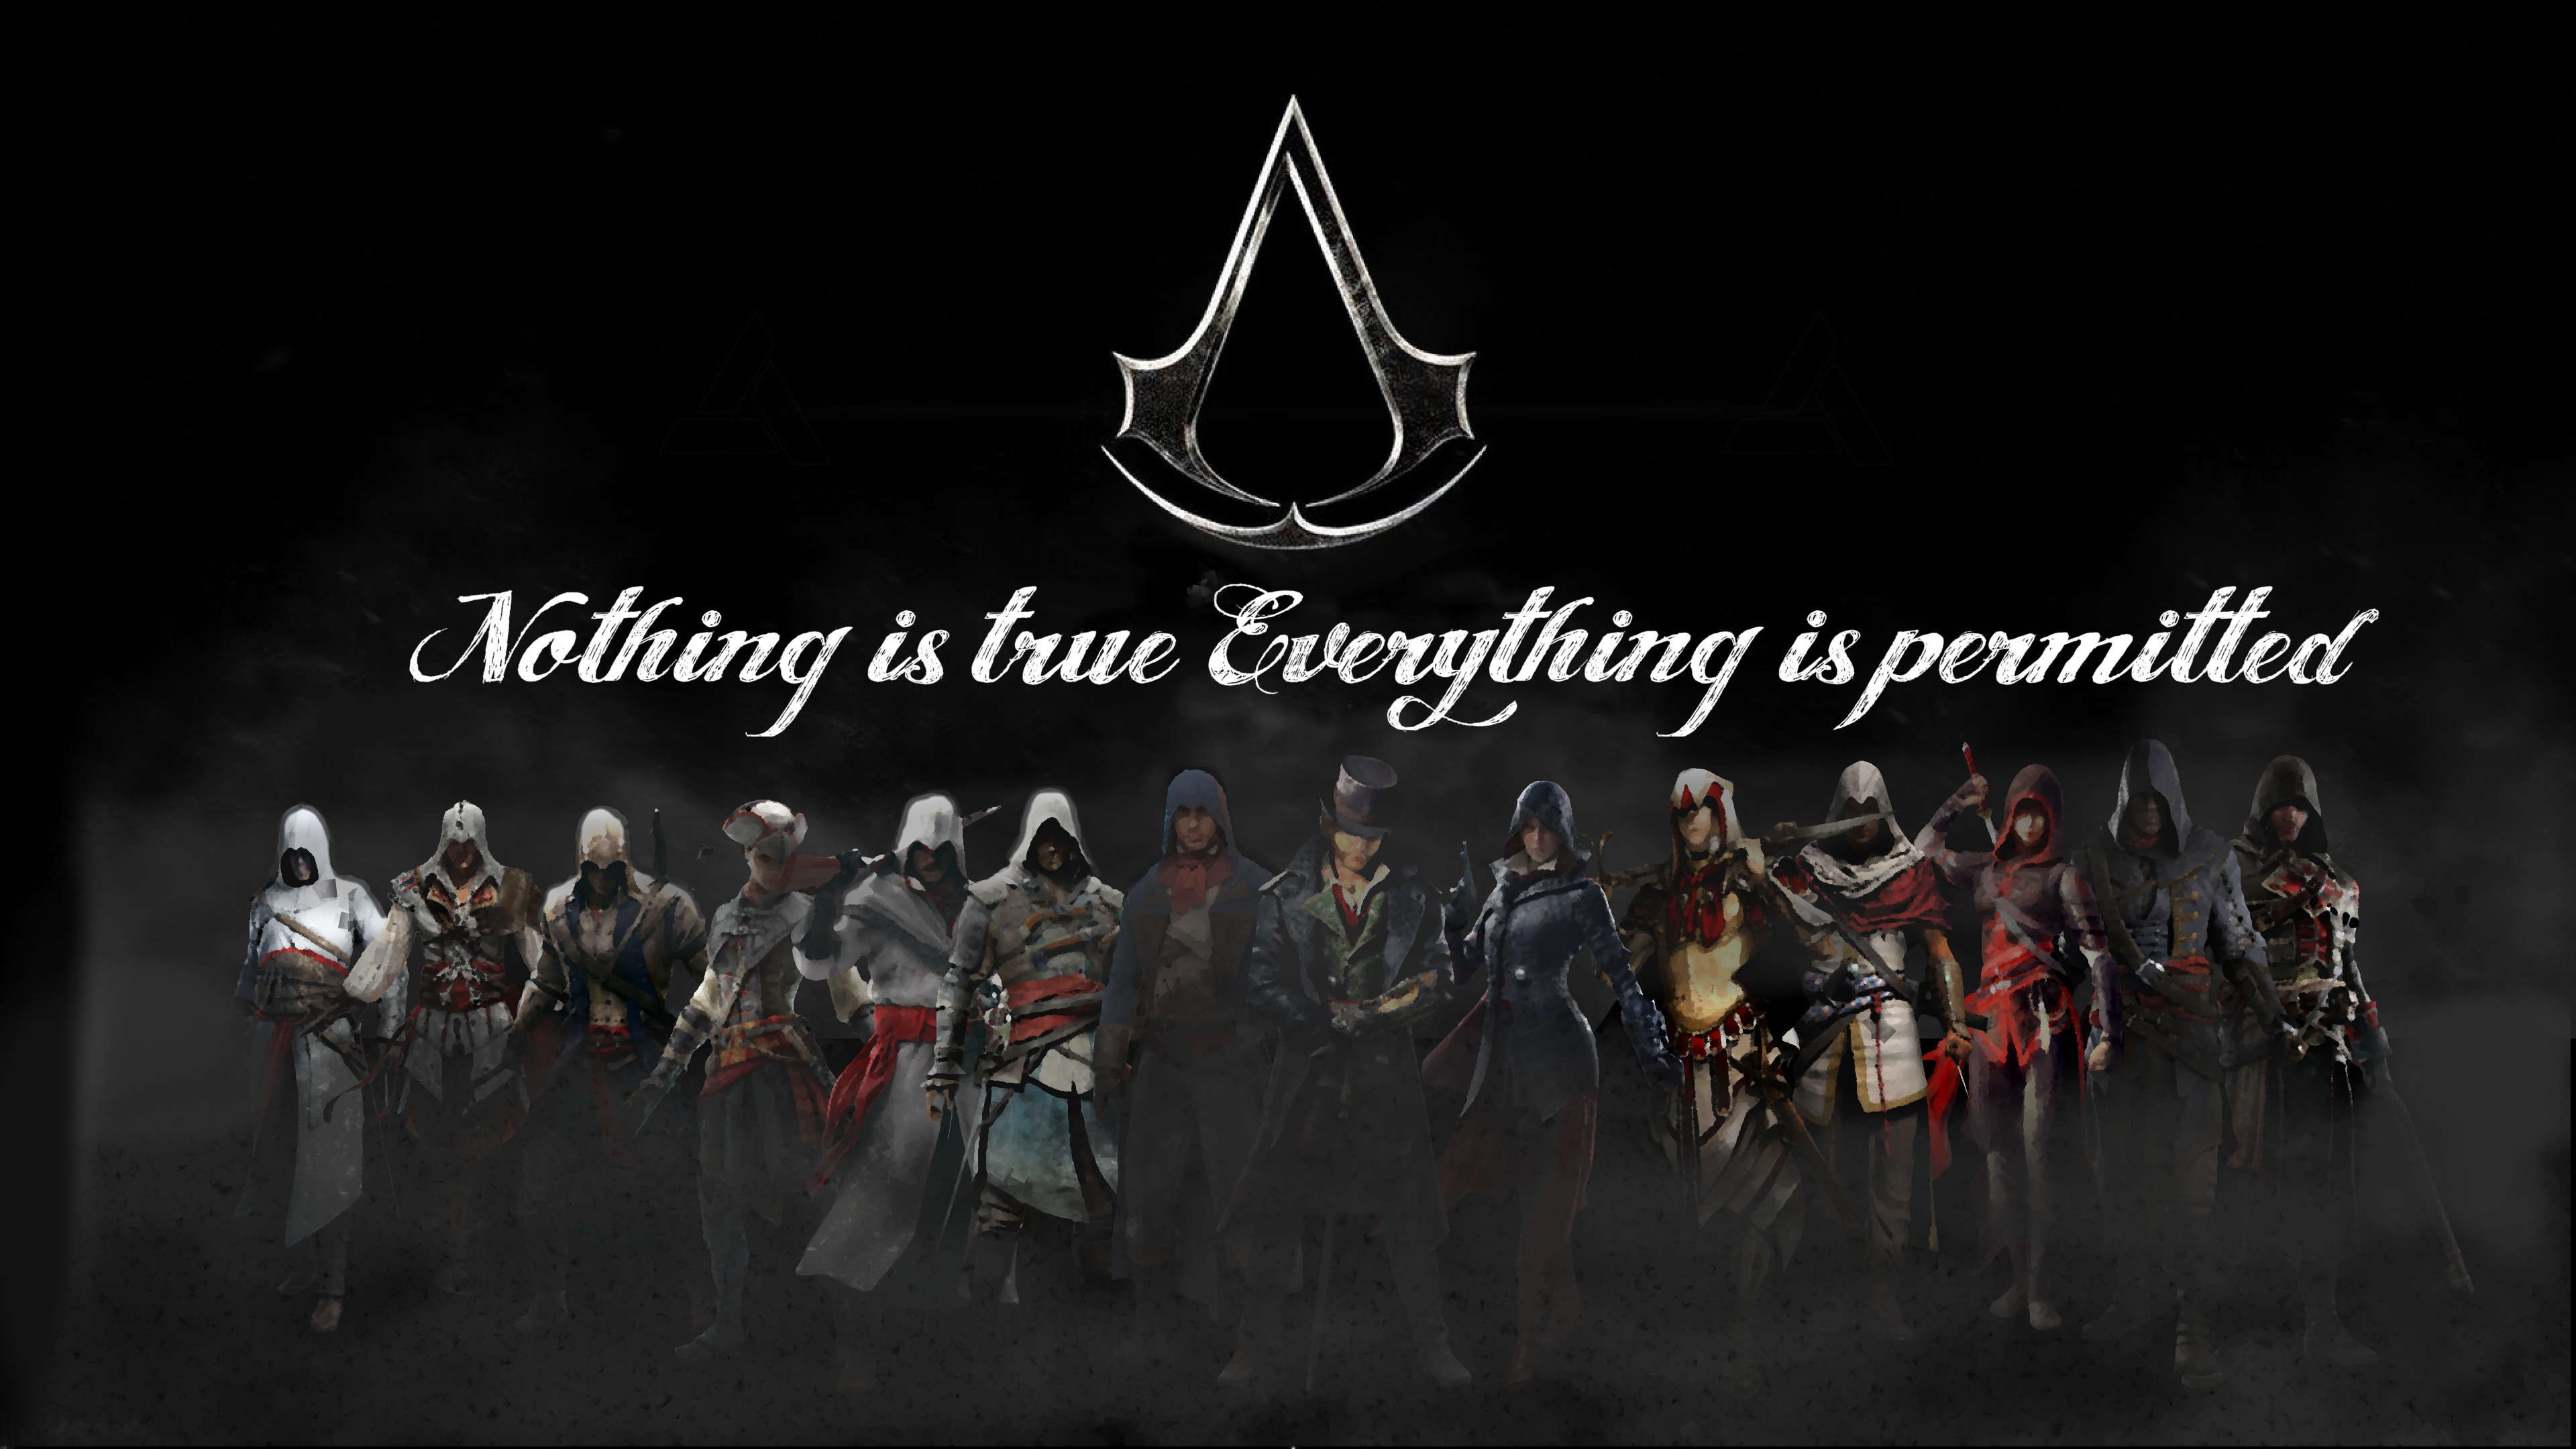 Assassins Creed Logo Wallpaper Nothing Is True Everything Permitted For Kids